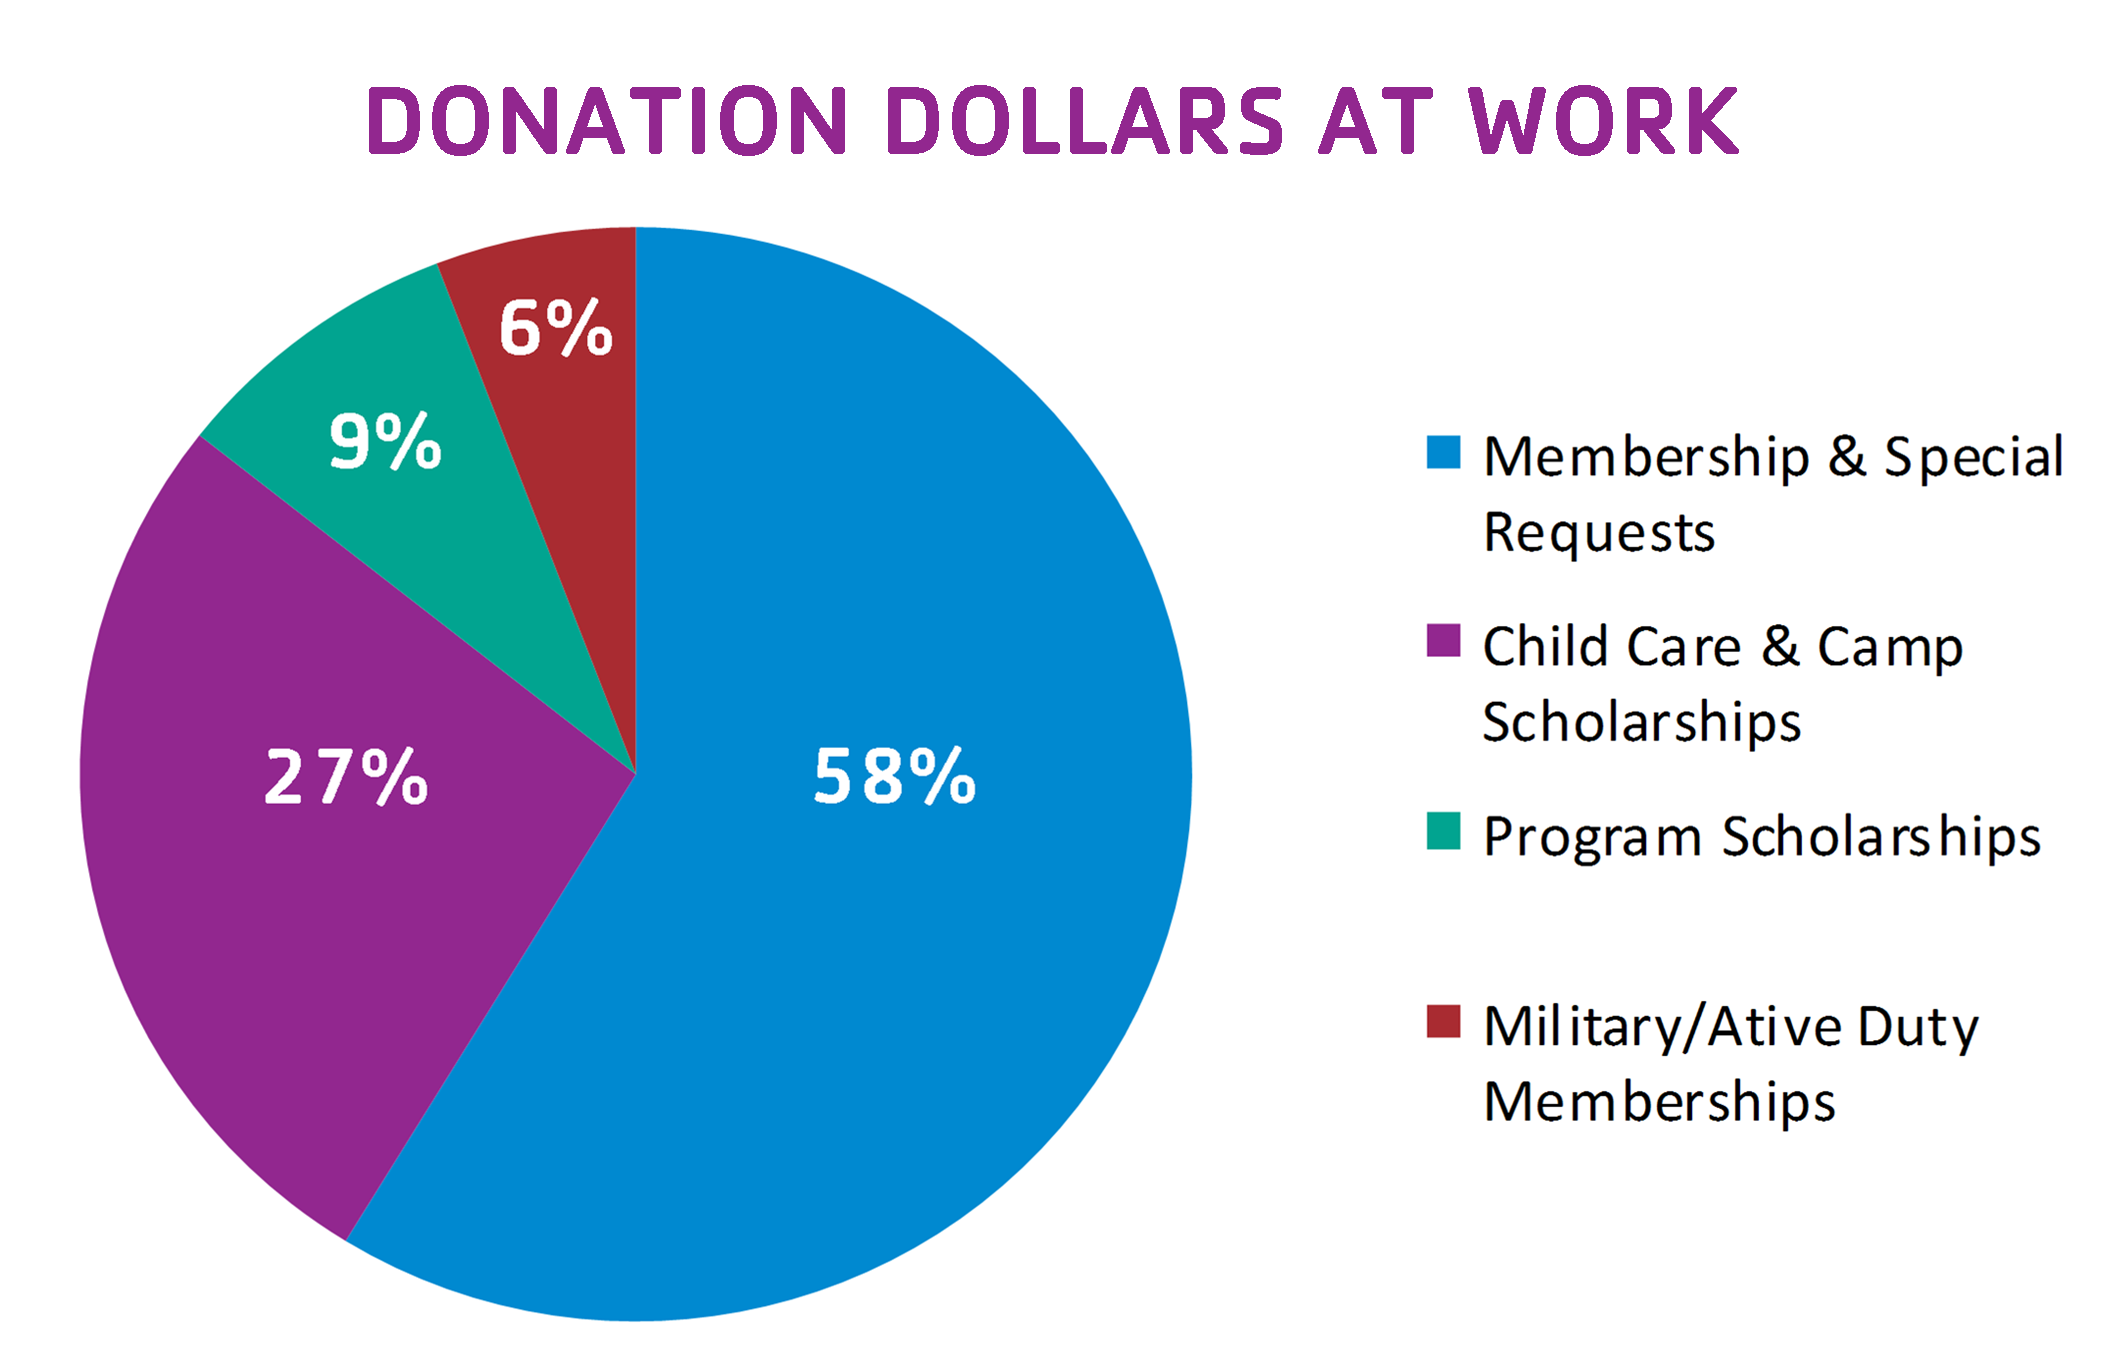 Our Charitable Cause - Penobscot Bay YMCA